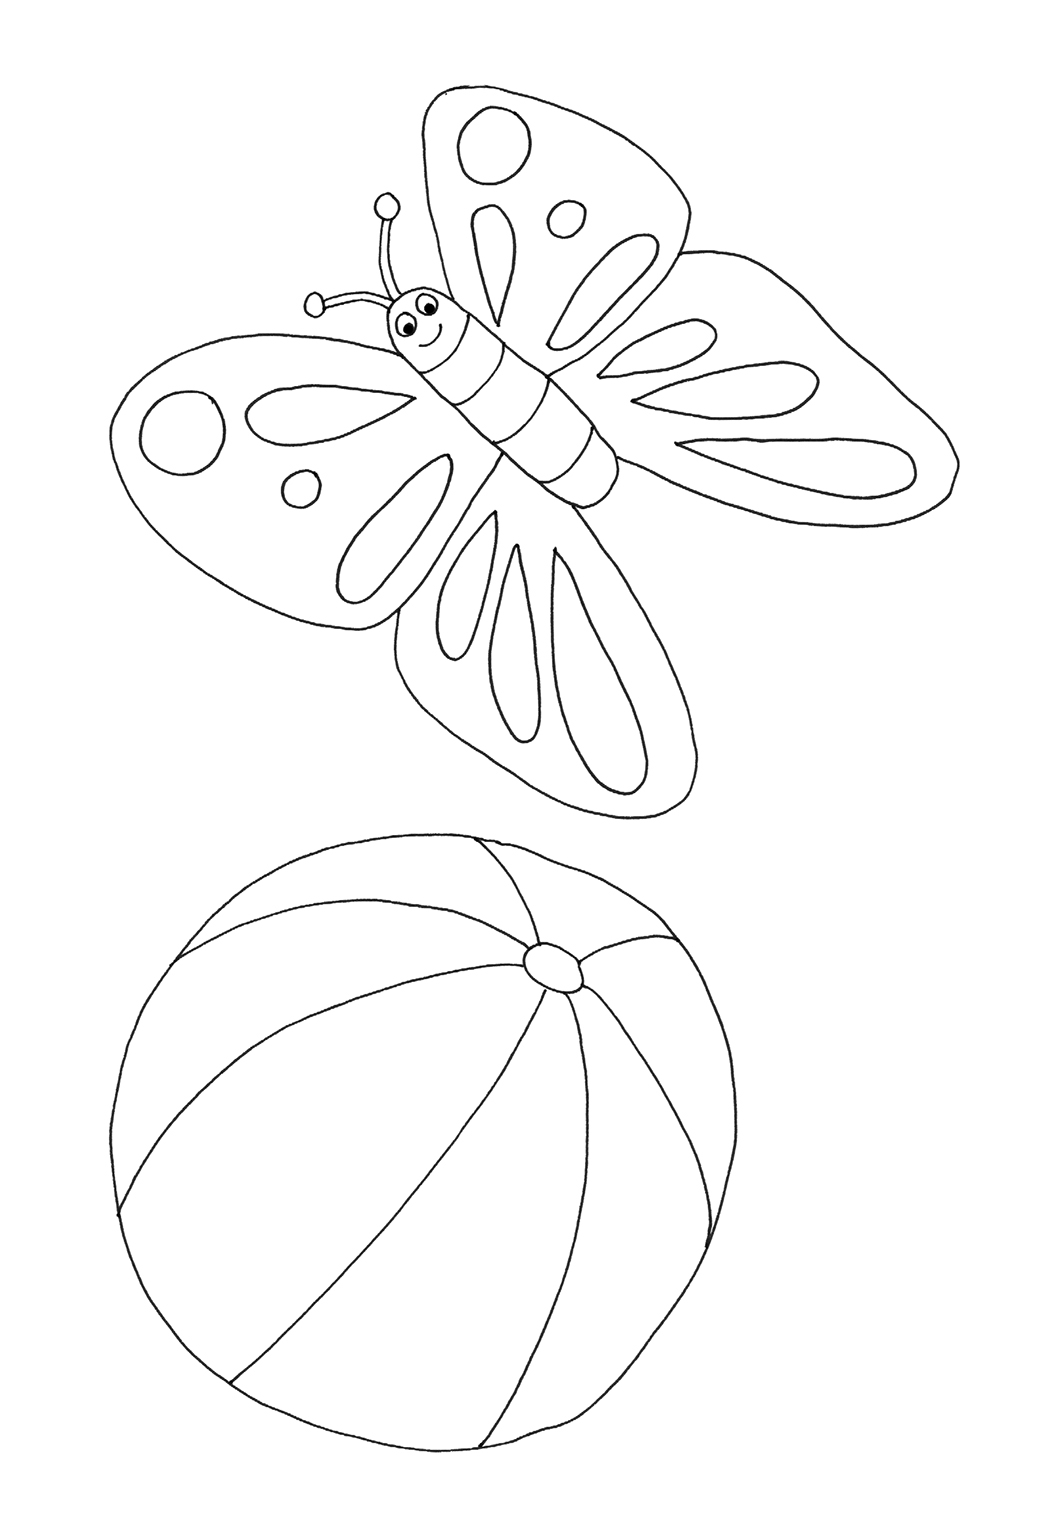 Printable coloring pages for kids butterfly ball